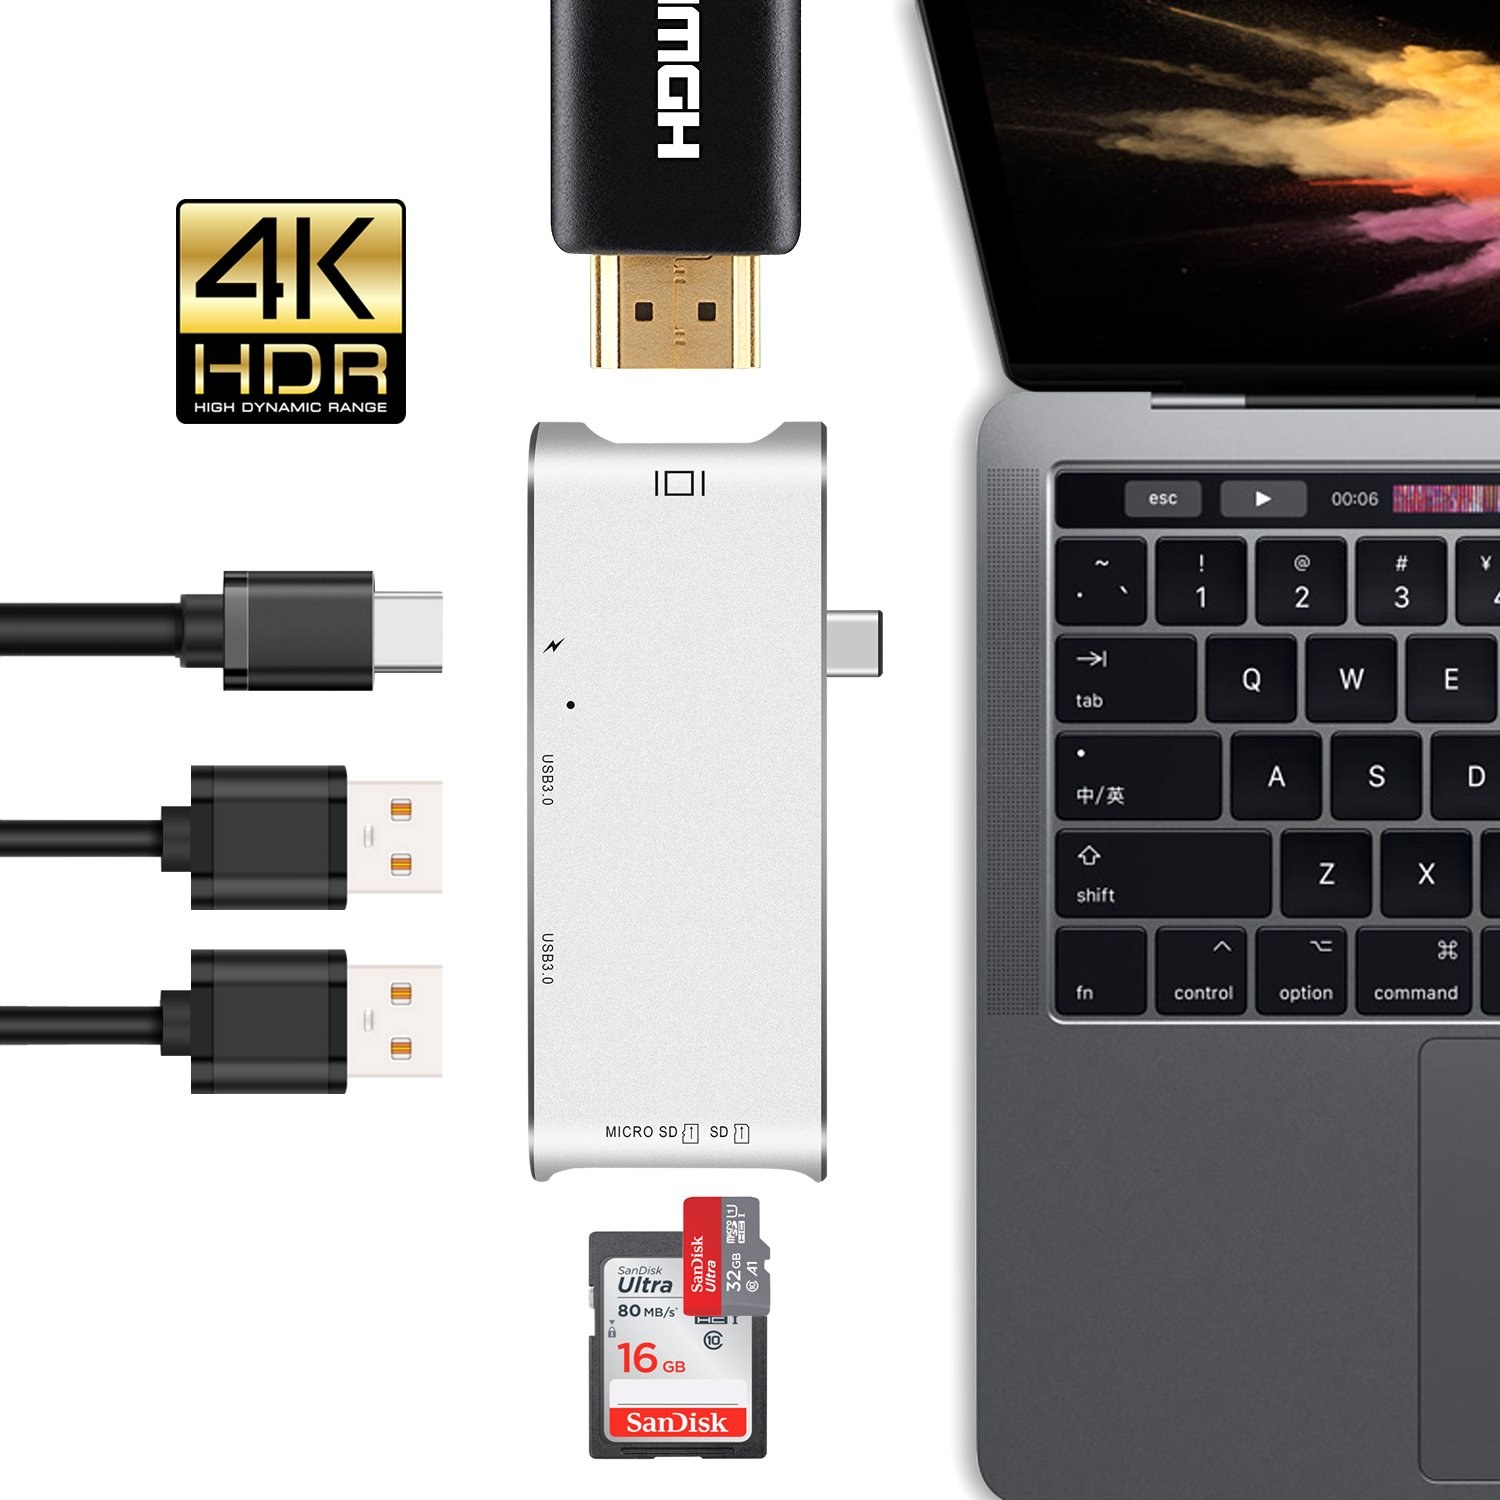 USB Type-C Hub, LUCKYDIY USB-C Adapter with HDMI 4K+2-Port USB 3.0+Power Delivery+Card Reader for MacBook Pro 2016/2017/Google Chromebook/More Type-C Devices